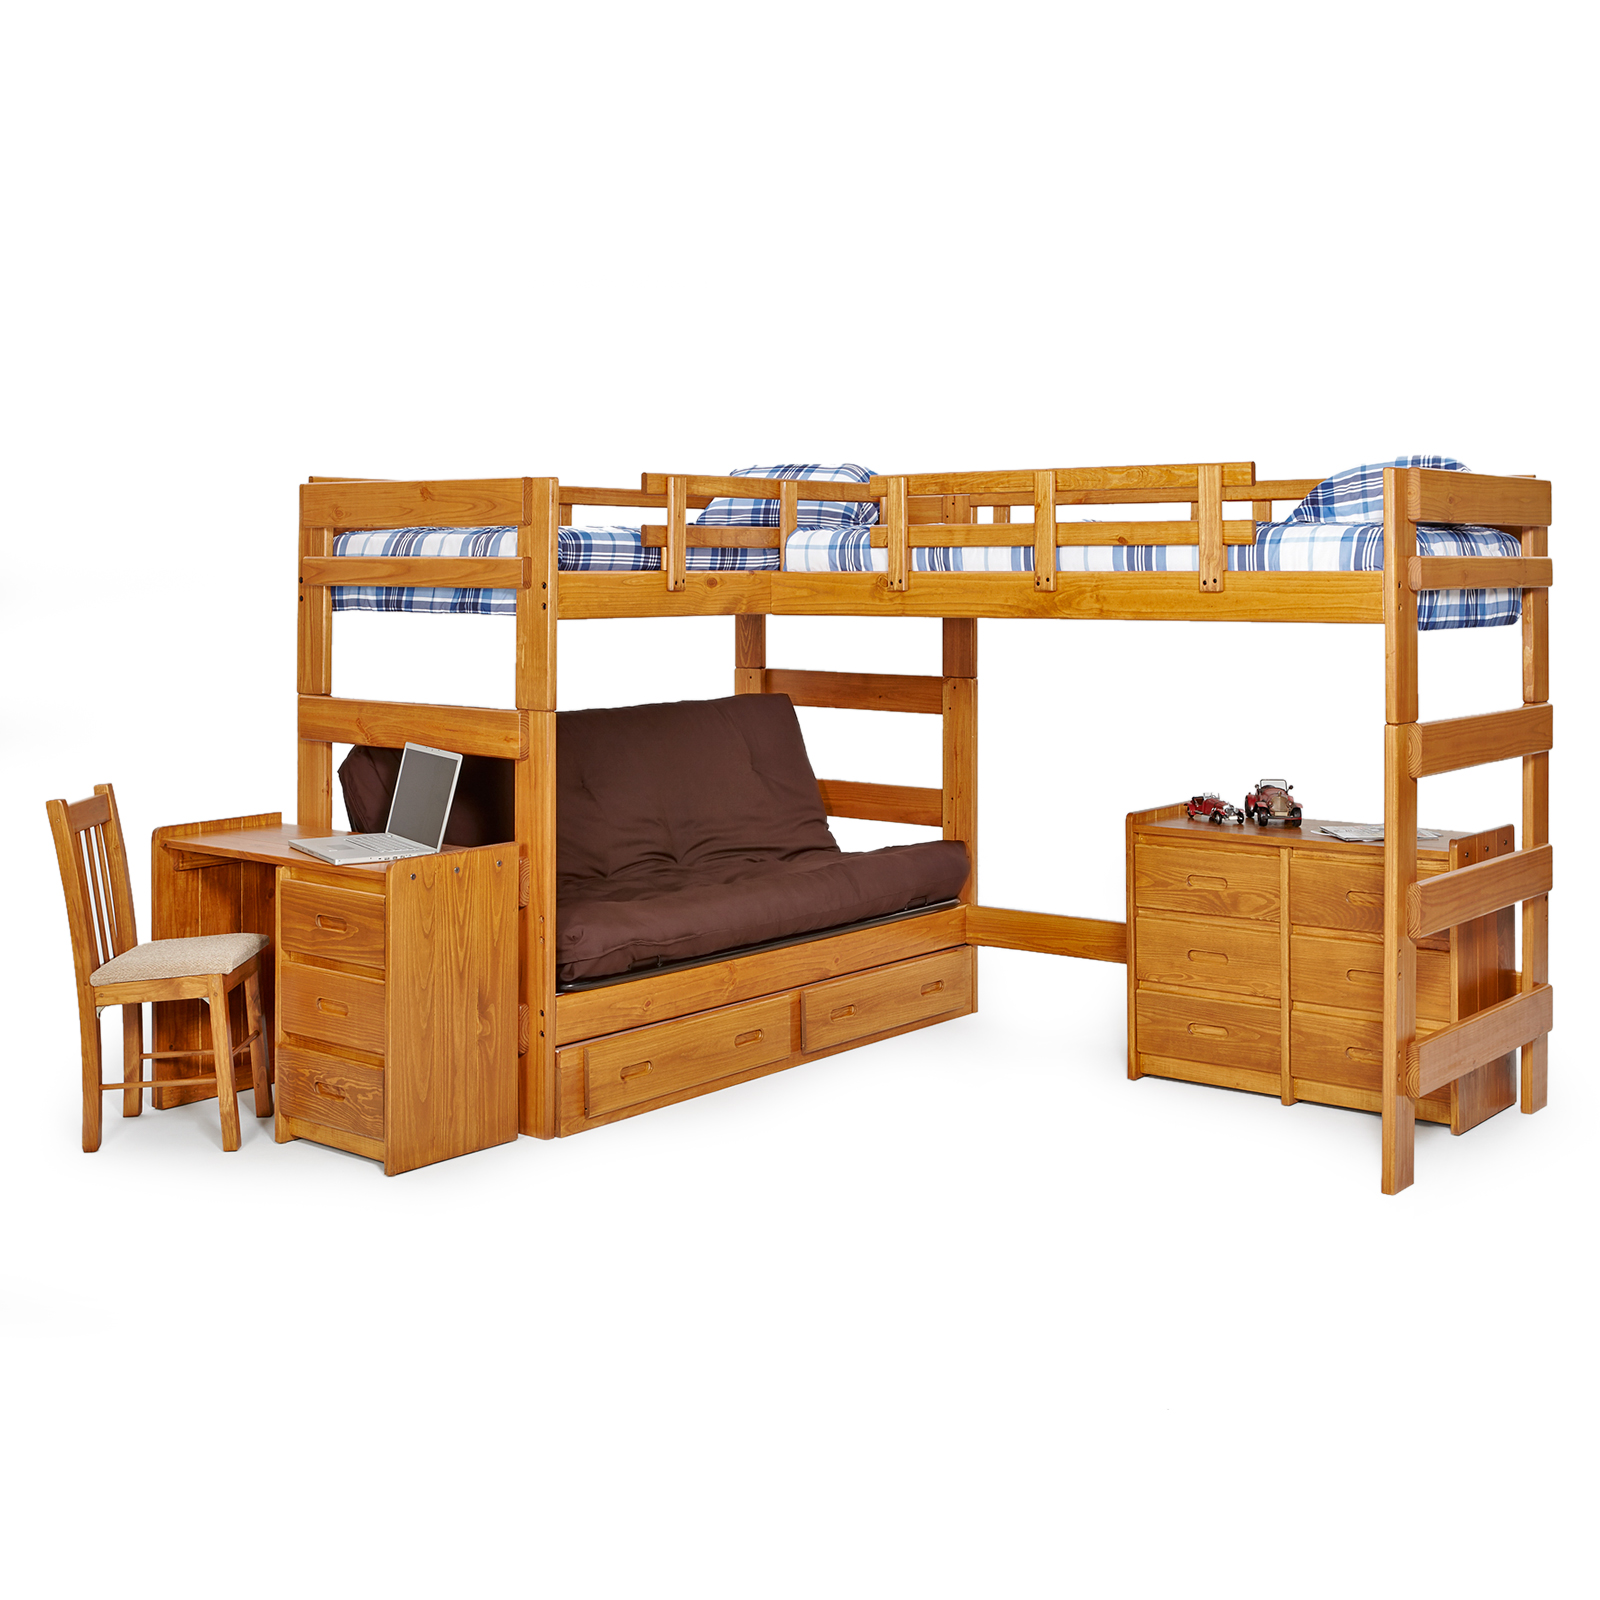 woodcrest heartland futon bunk bed with extra loft - honey pine